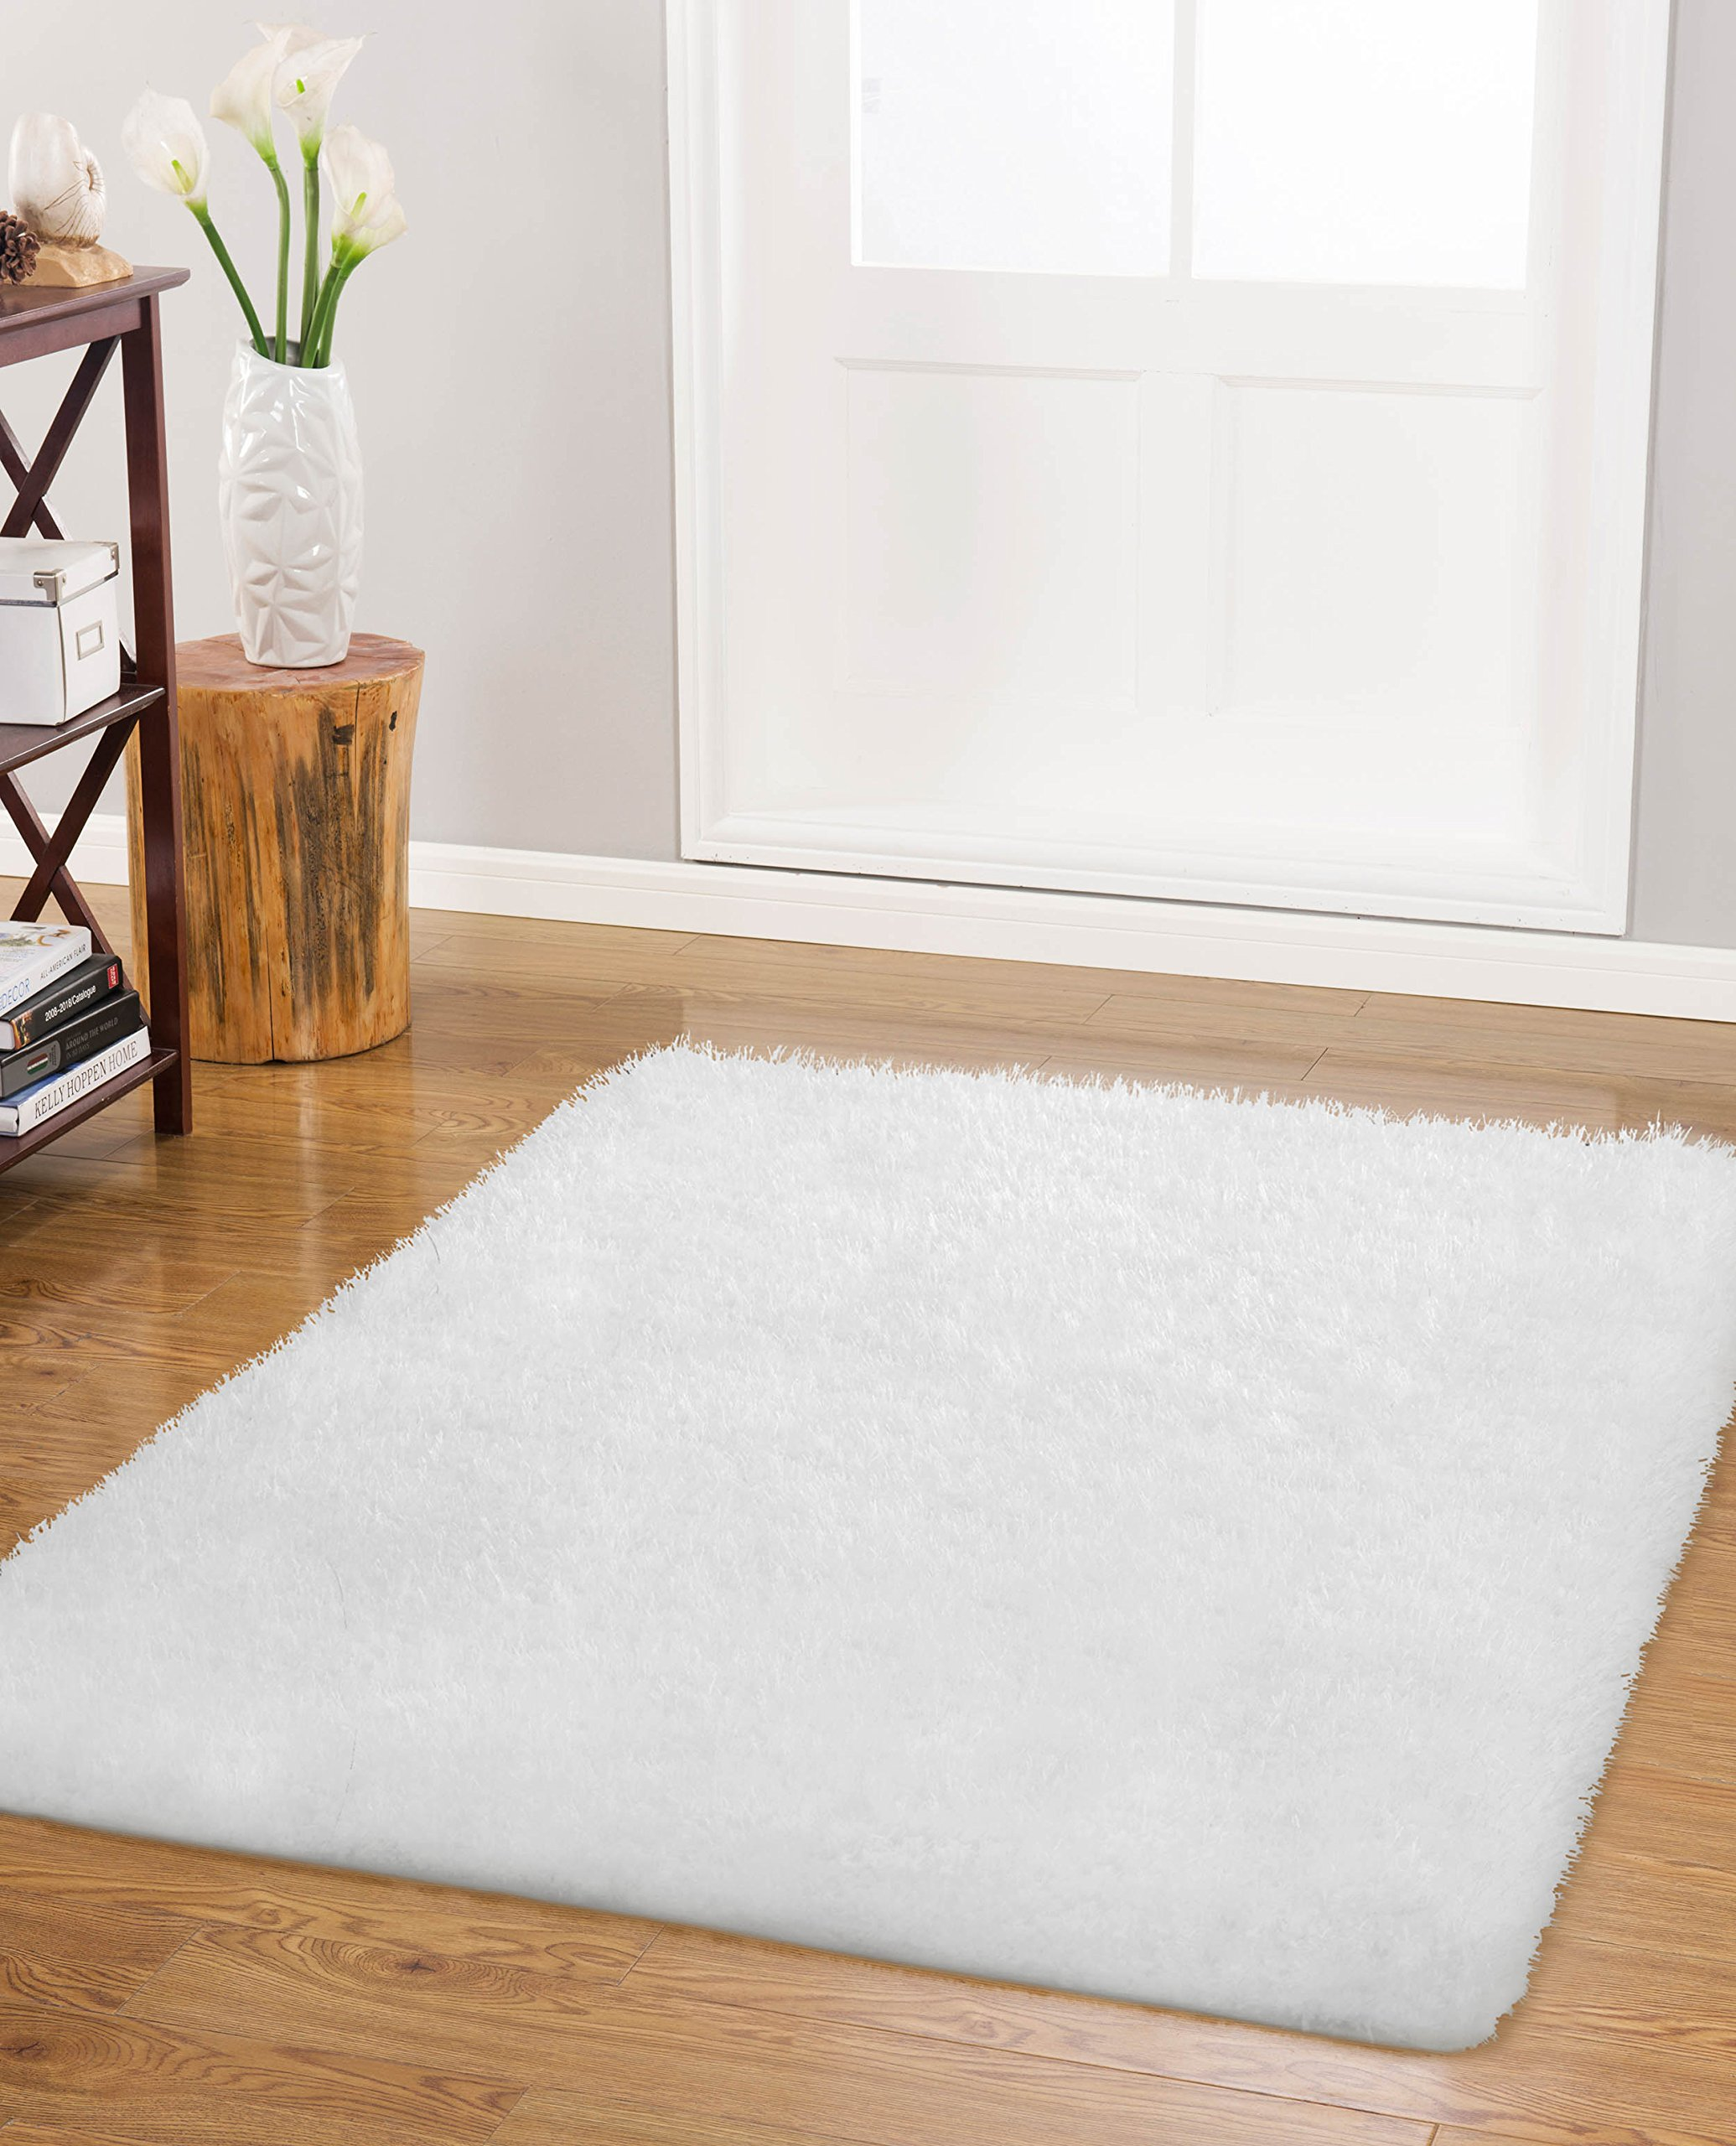 "Vista Living Claudia Shag Area Rug 27 in. x 45 in., White - Includes (1) 27"" x 45"" x 1.6"" H shag accent rug Durable high-cut fibers are fade-resistant and stain-resistant Skid-resistant backing helps keep rug in place - living-room-soft-furnishings, living-room, area-rugs - 91%2B2qph0ZfL -"